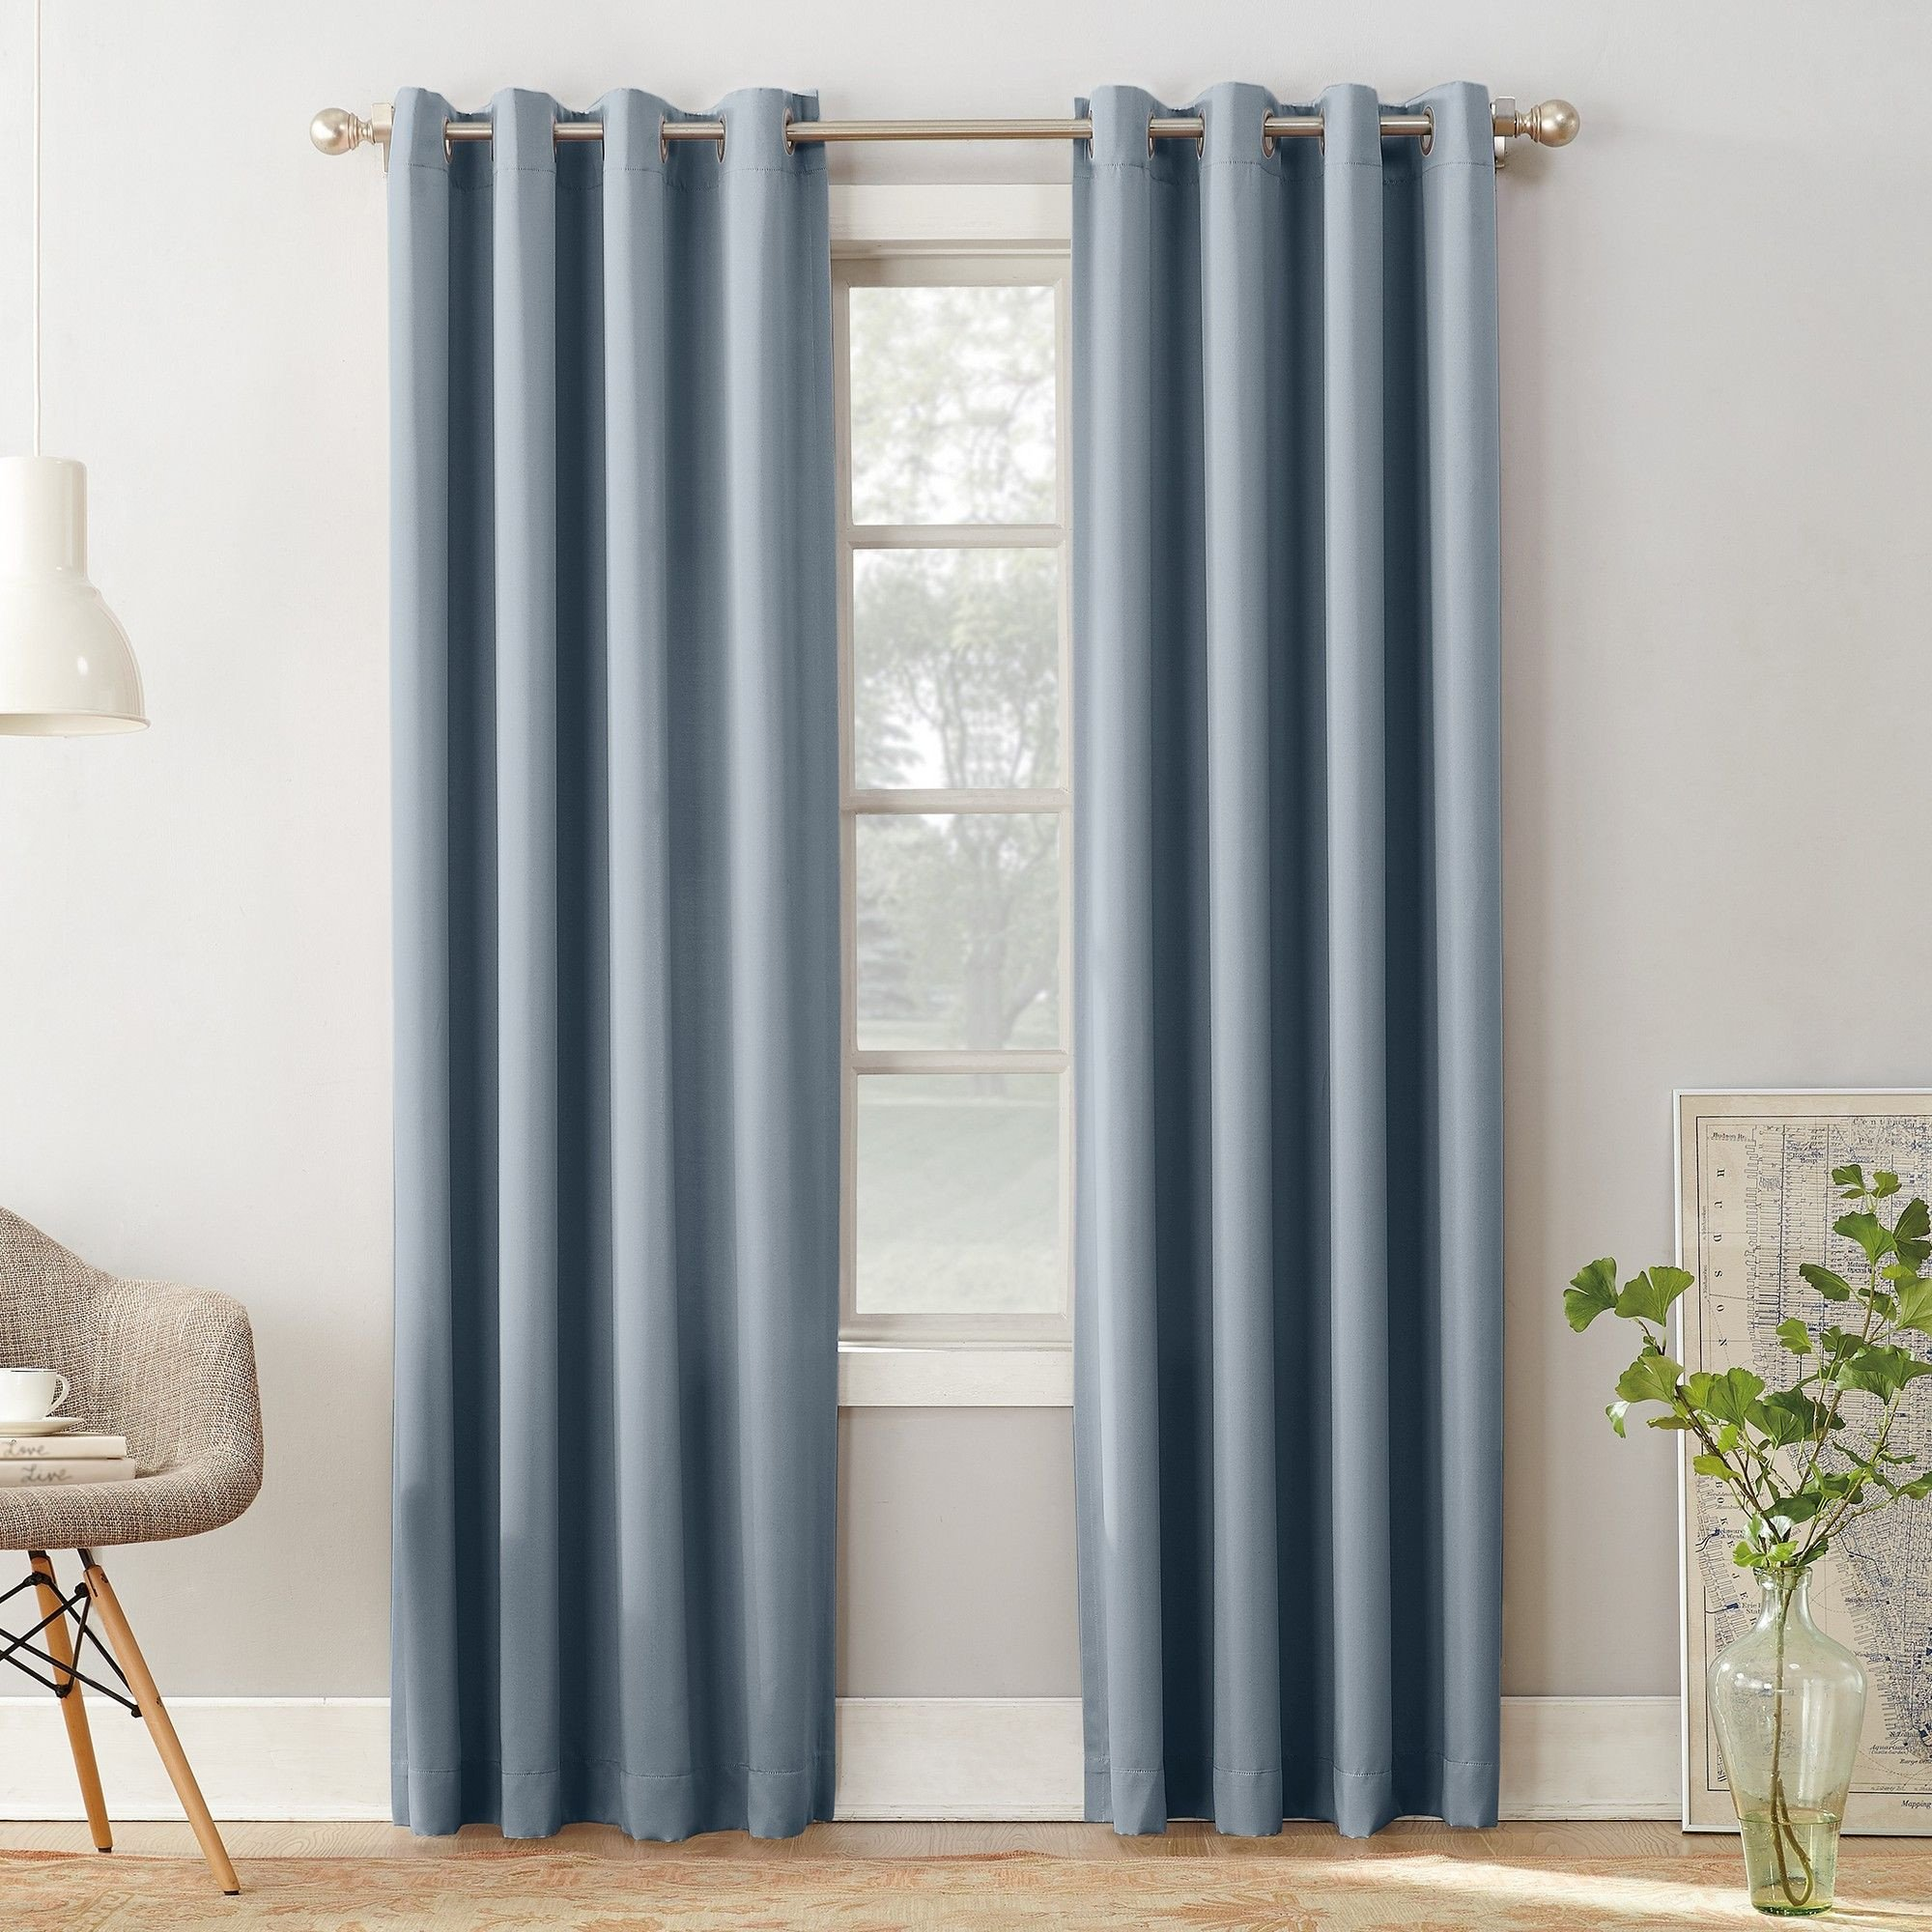 Best Curtains for Bedroom Fresh Seymour Room Darkening Grommet Curtain Panel Vintage Blue 54